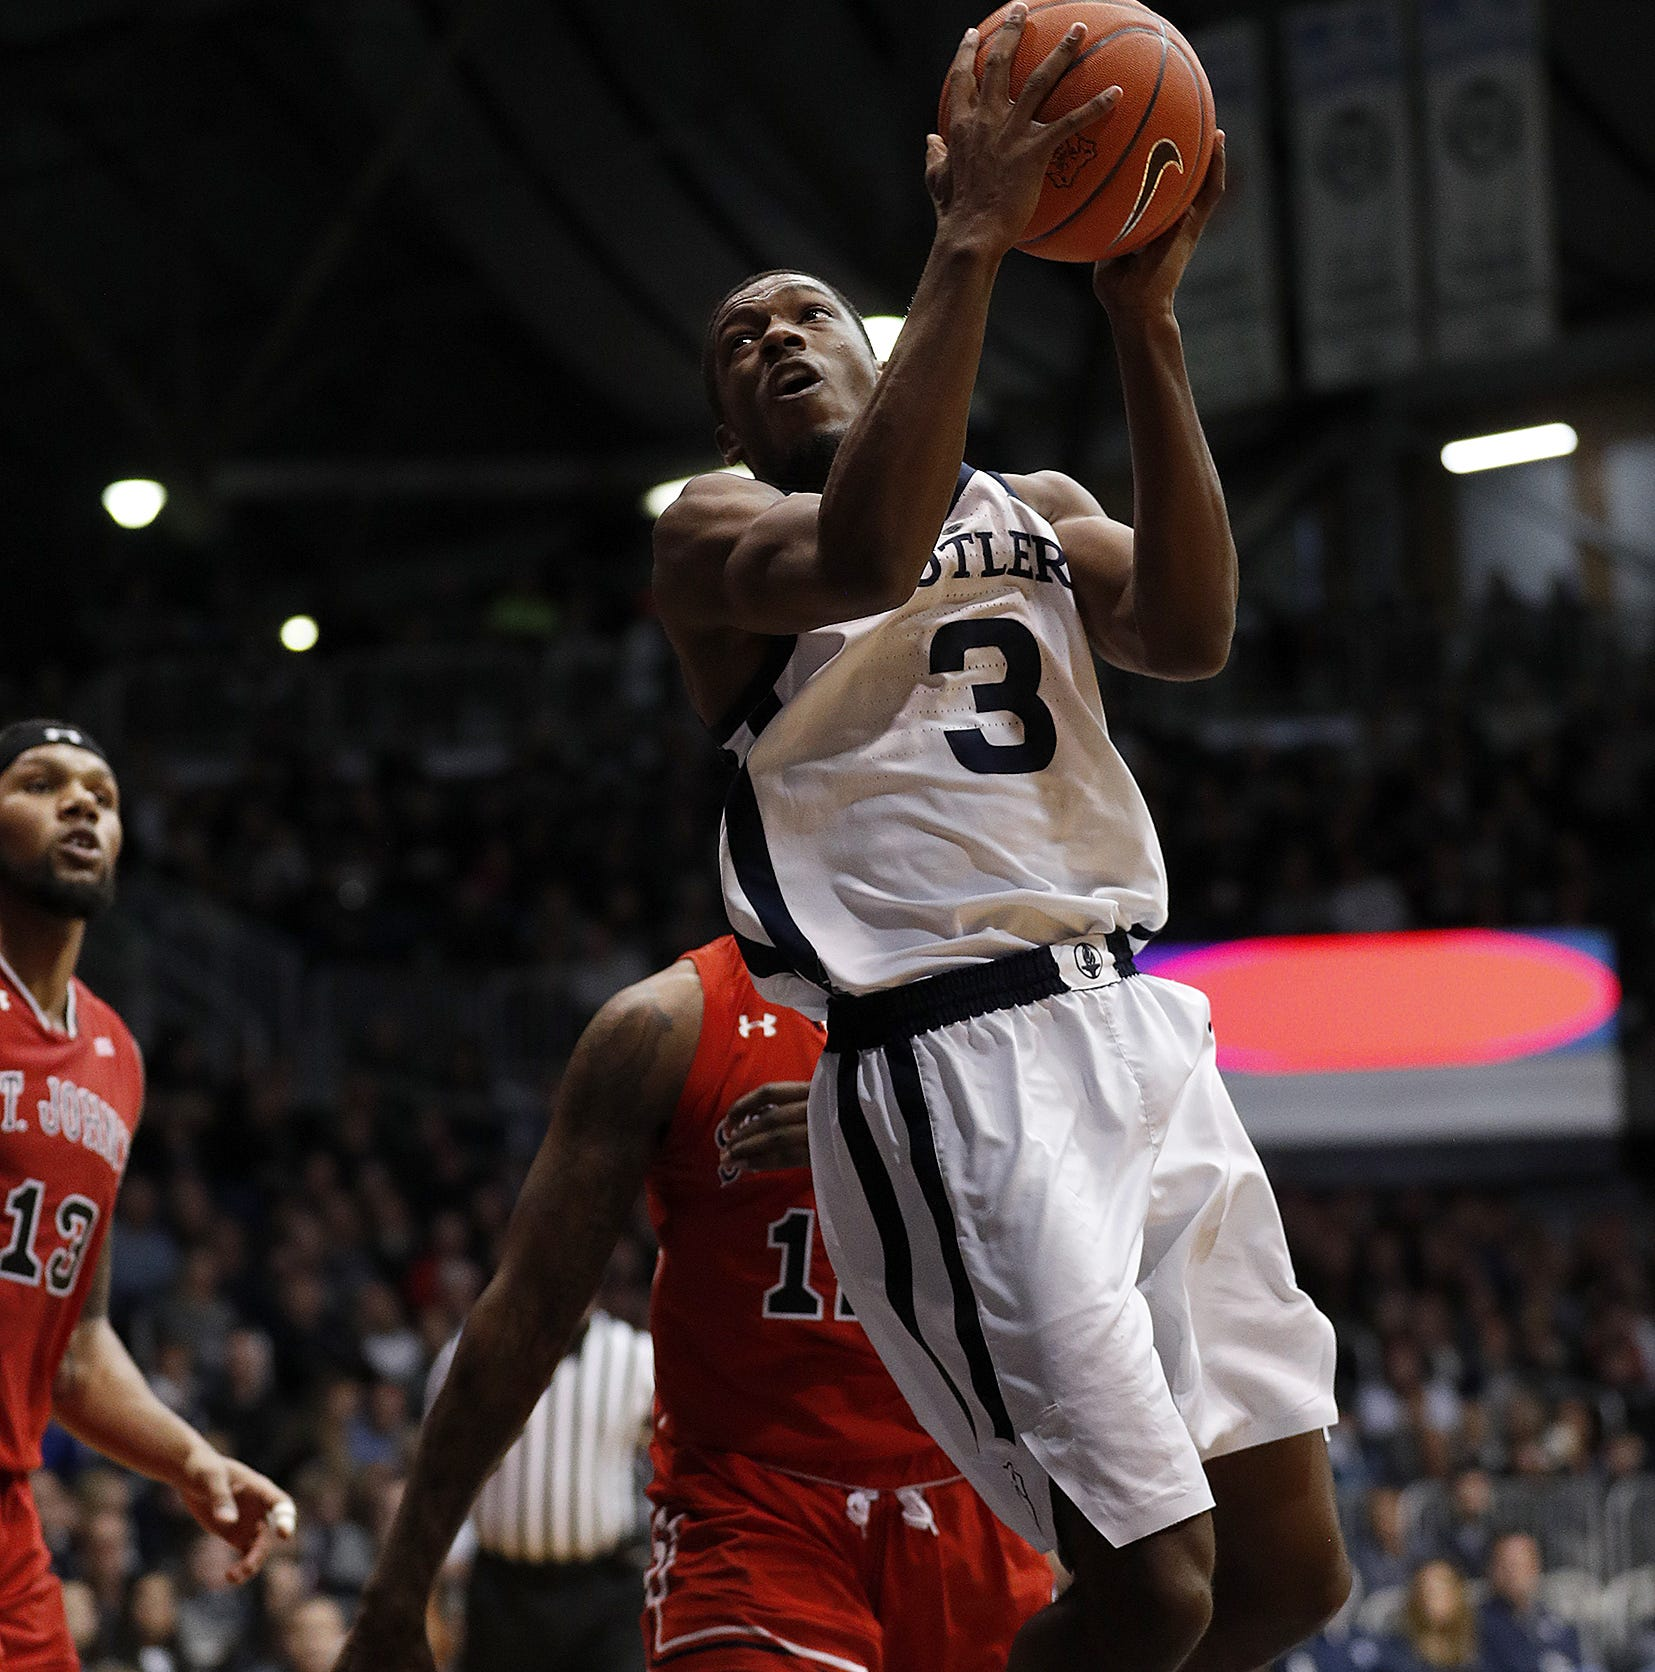 Insider: Lessons learned, victory earned as Butler takes 'huge step' with win over St. John's